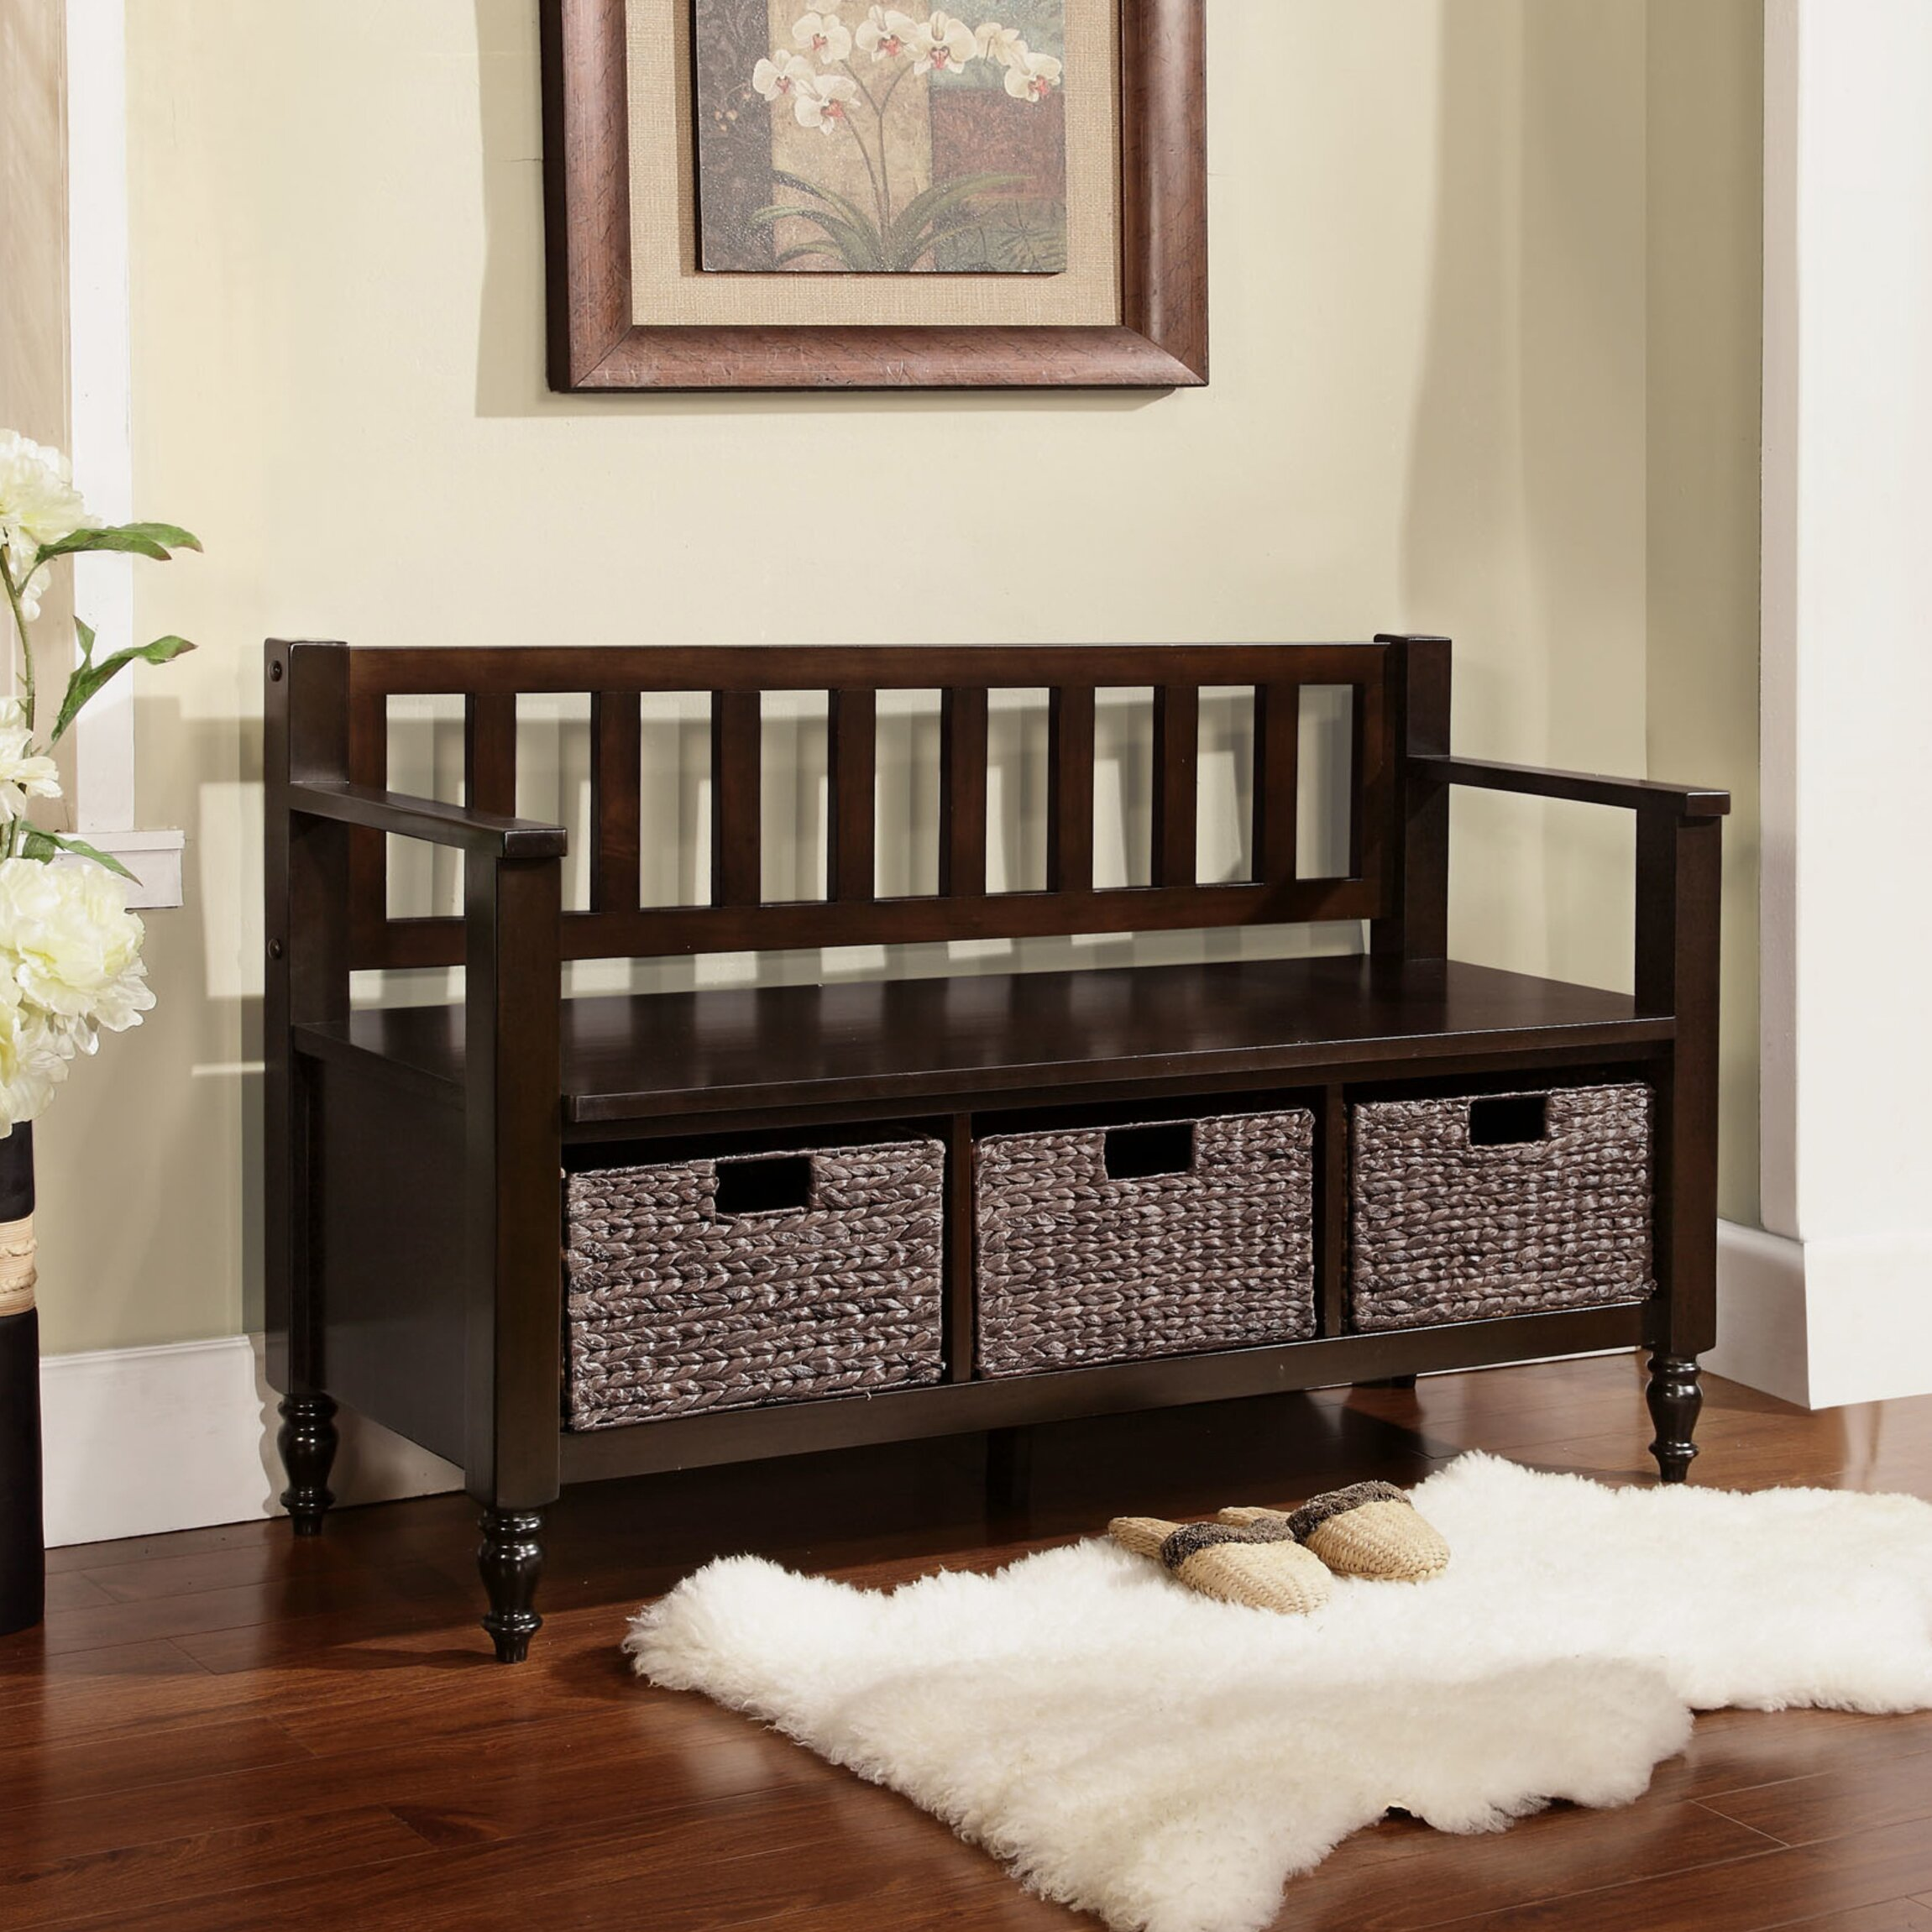 Simpli home dakota entryway bench reviews wayfair for Foyer seating area ideas